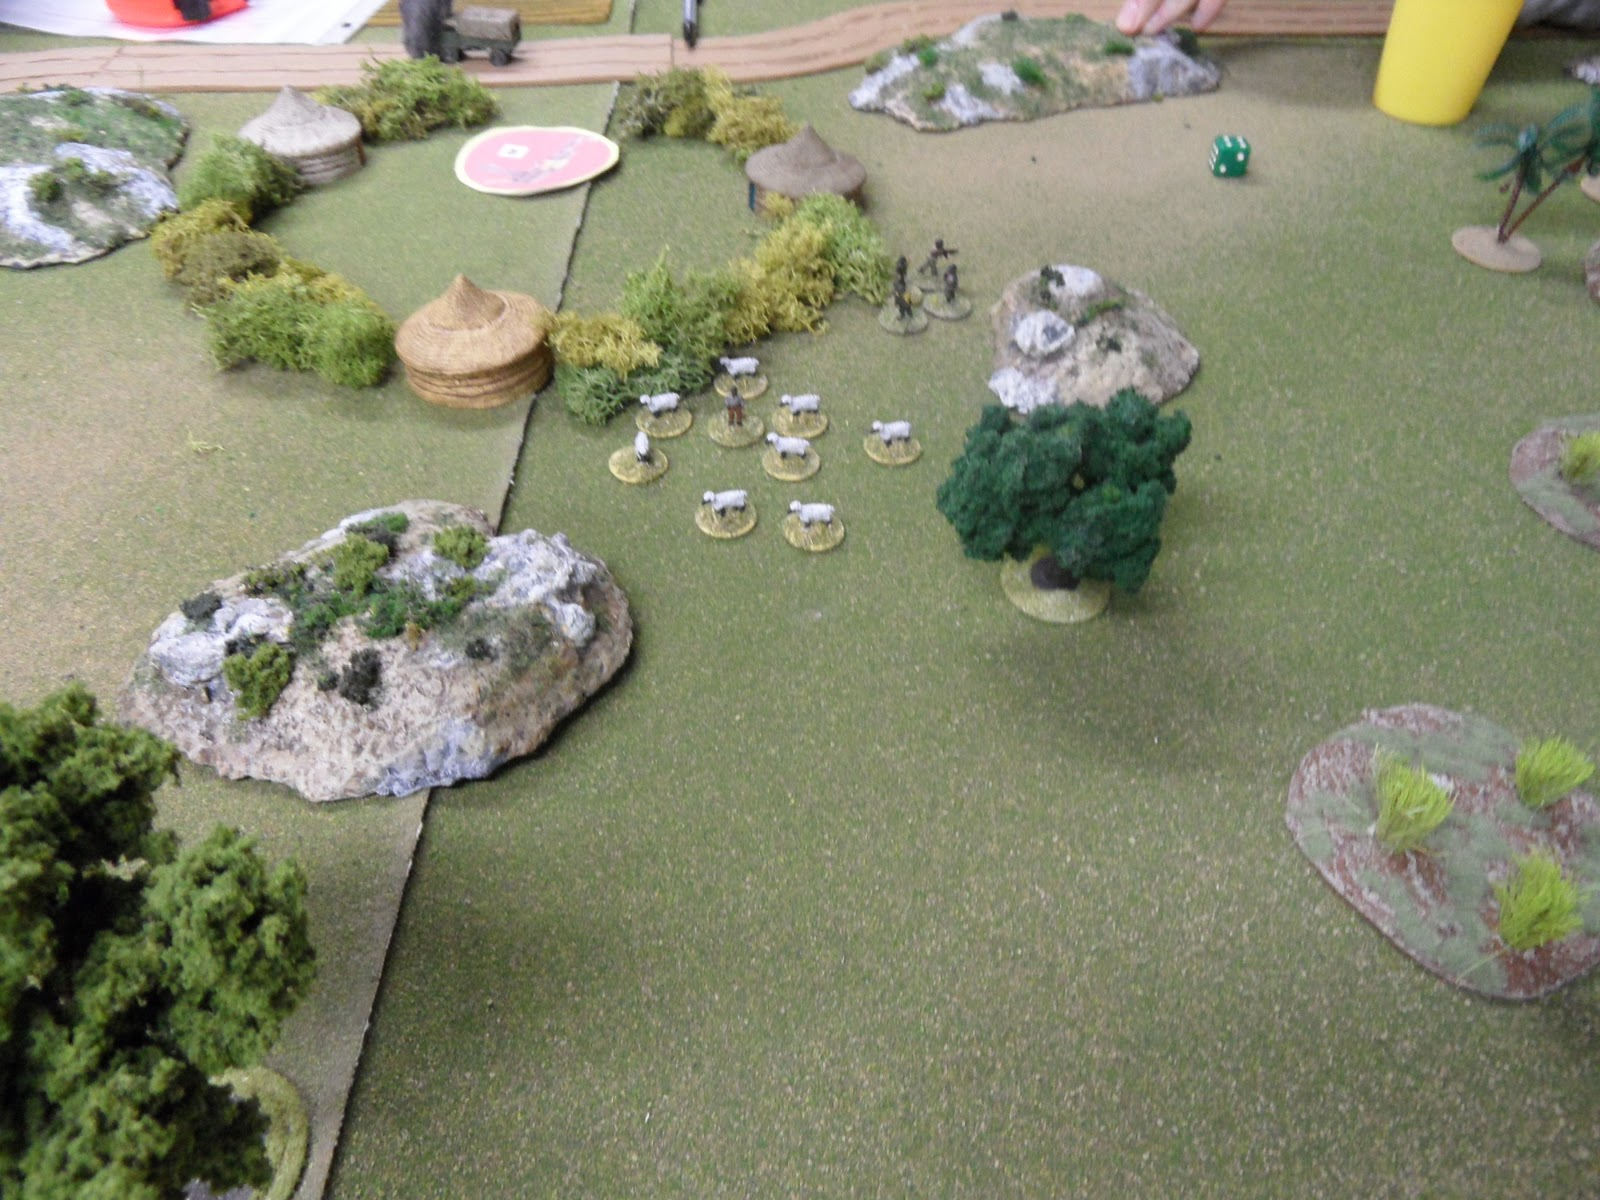 Fearing the retribution of the rapidly advancing R.L.I. the RPG crew fled behind the village  causing the shepherd to try to find a less hazardous area to graze his flock